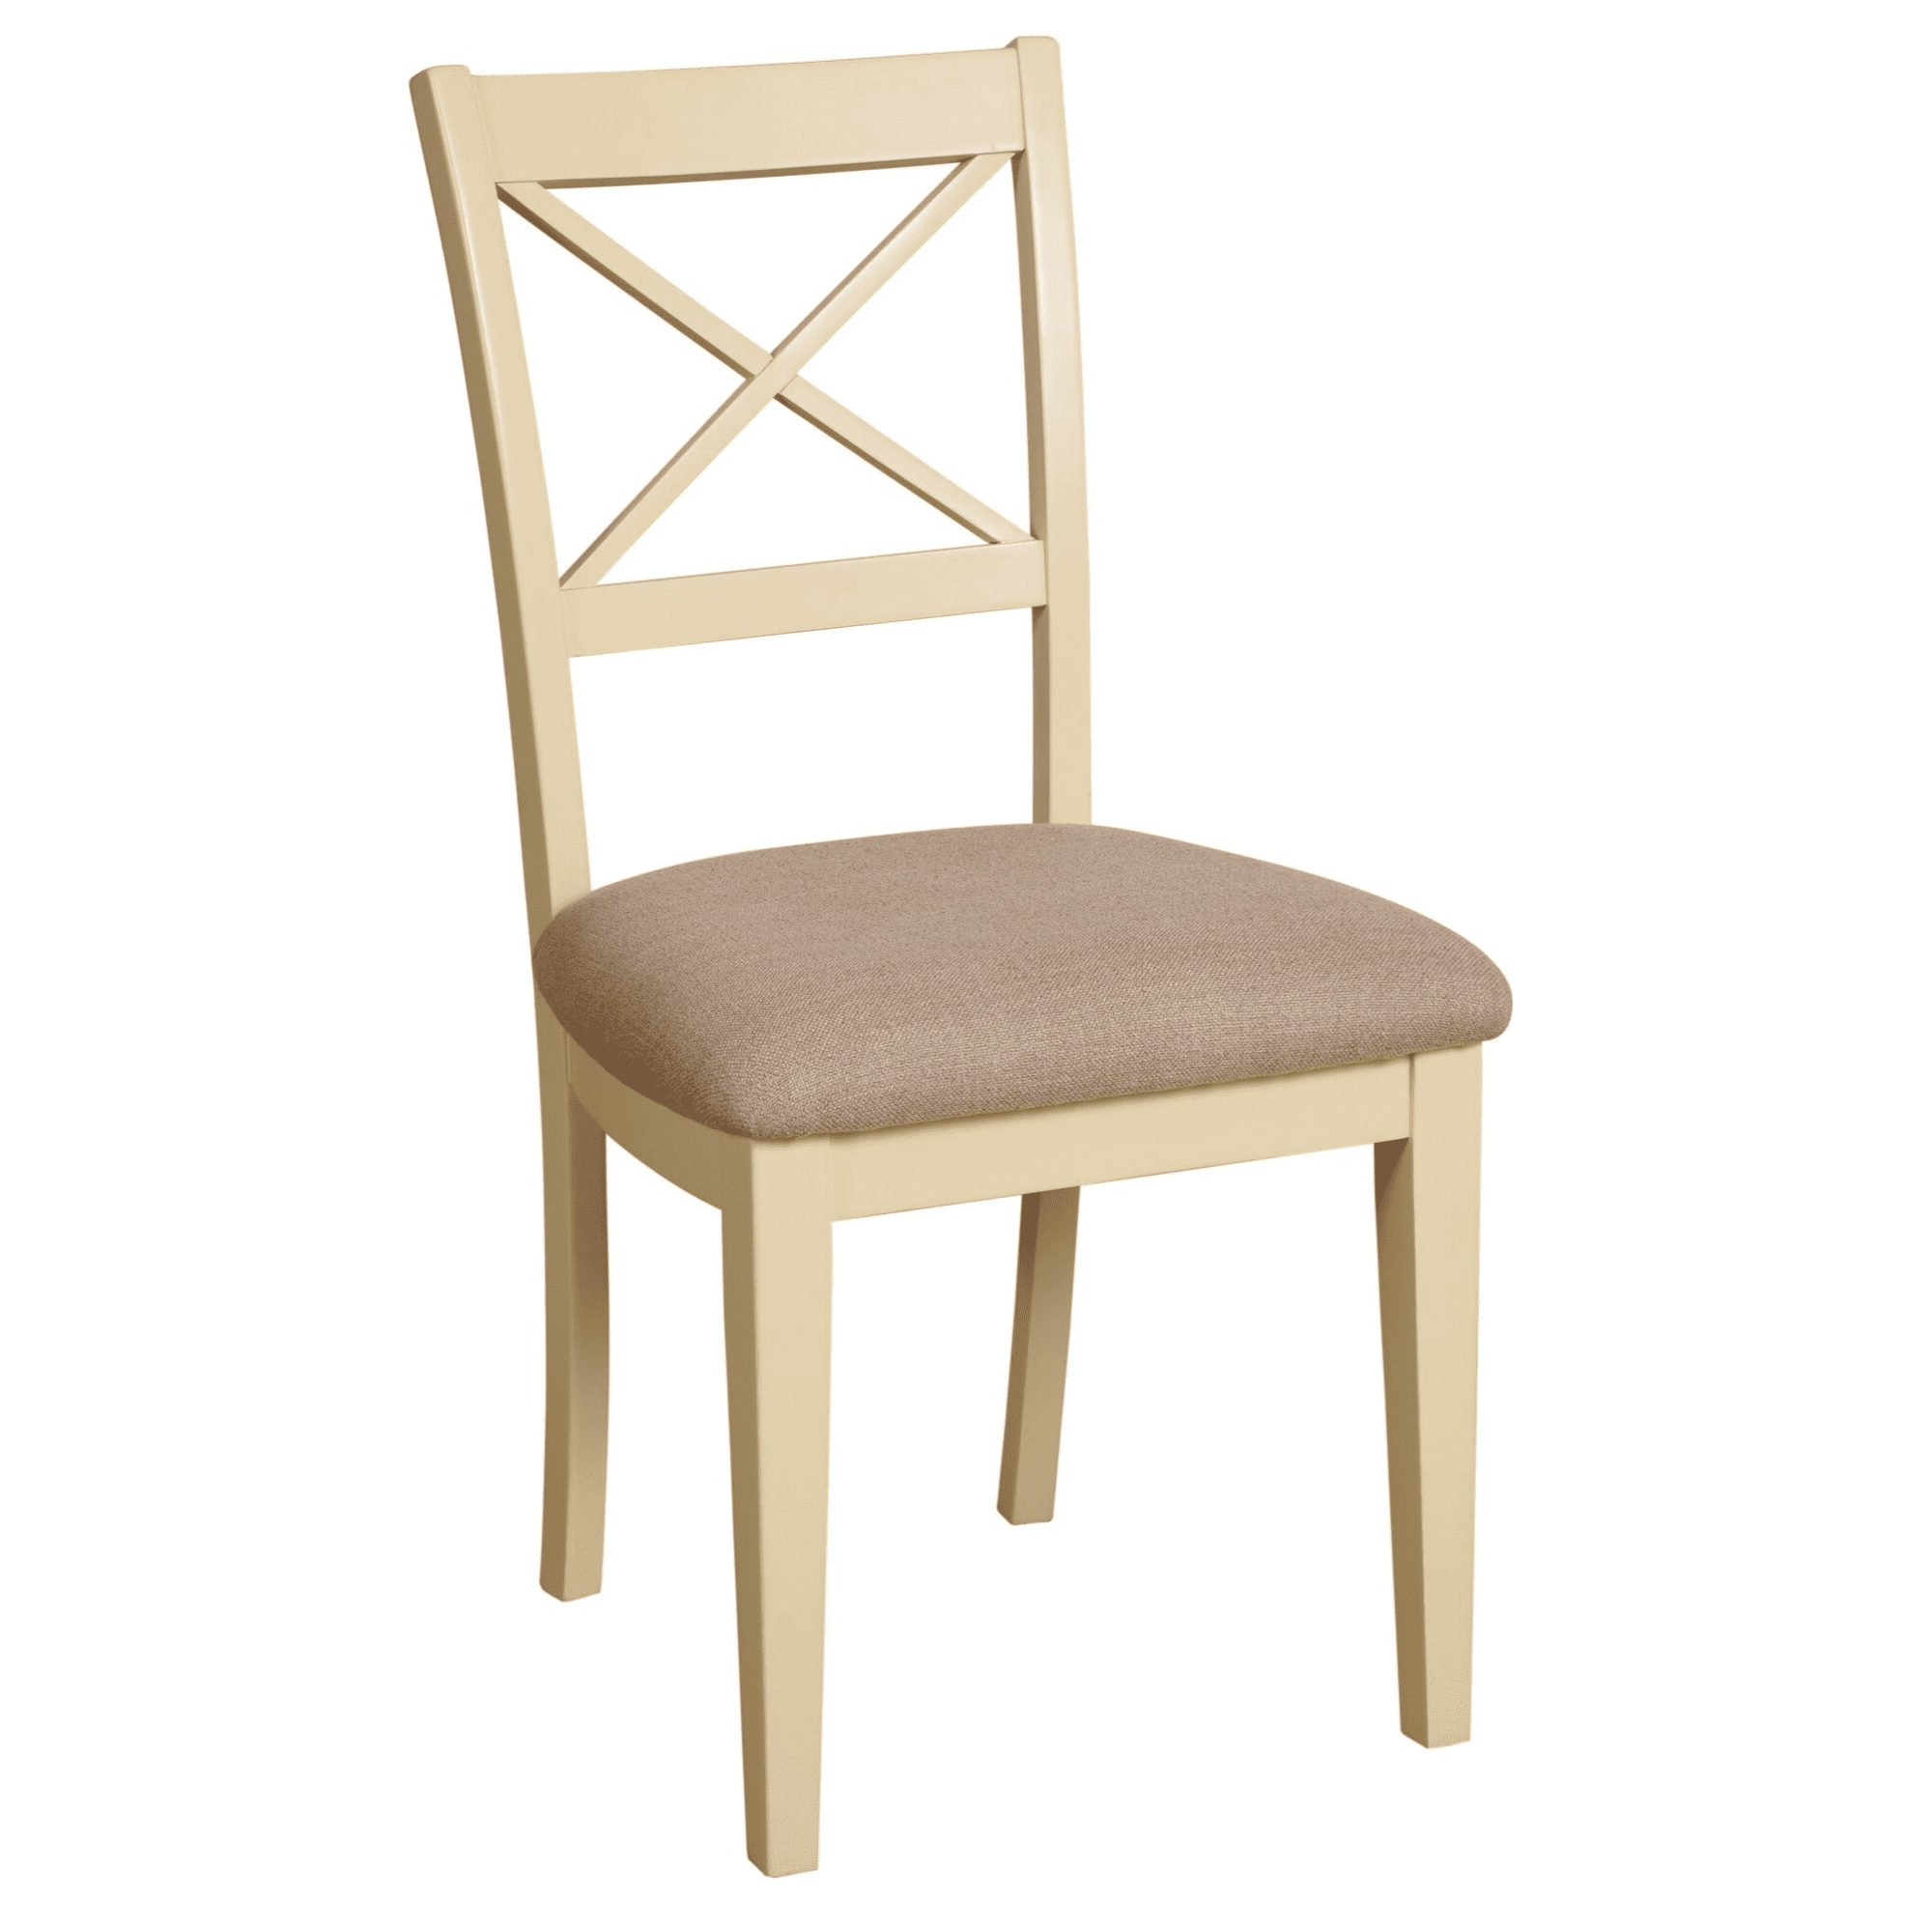 LH08 Lundy painted slat back chairs with padded seat